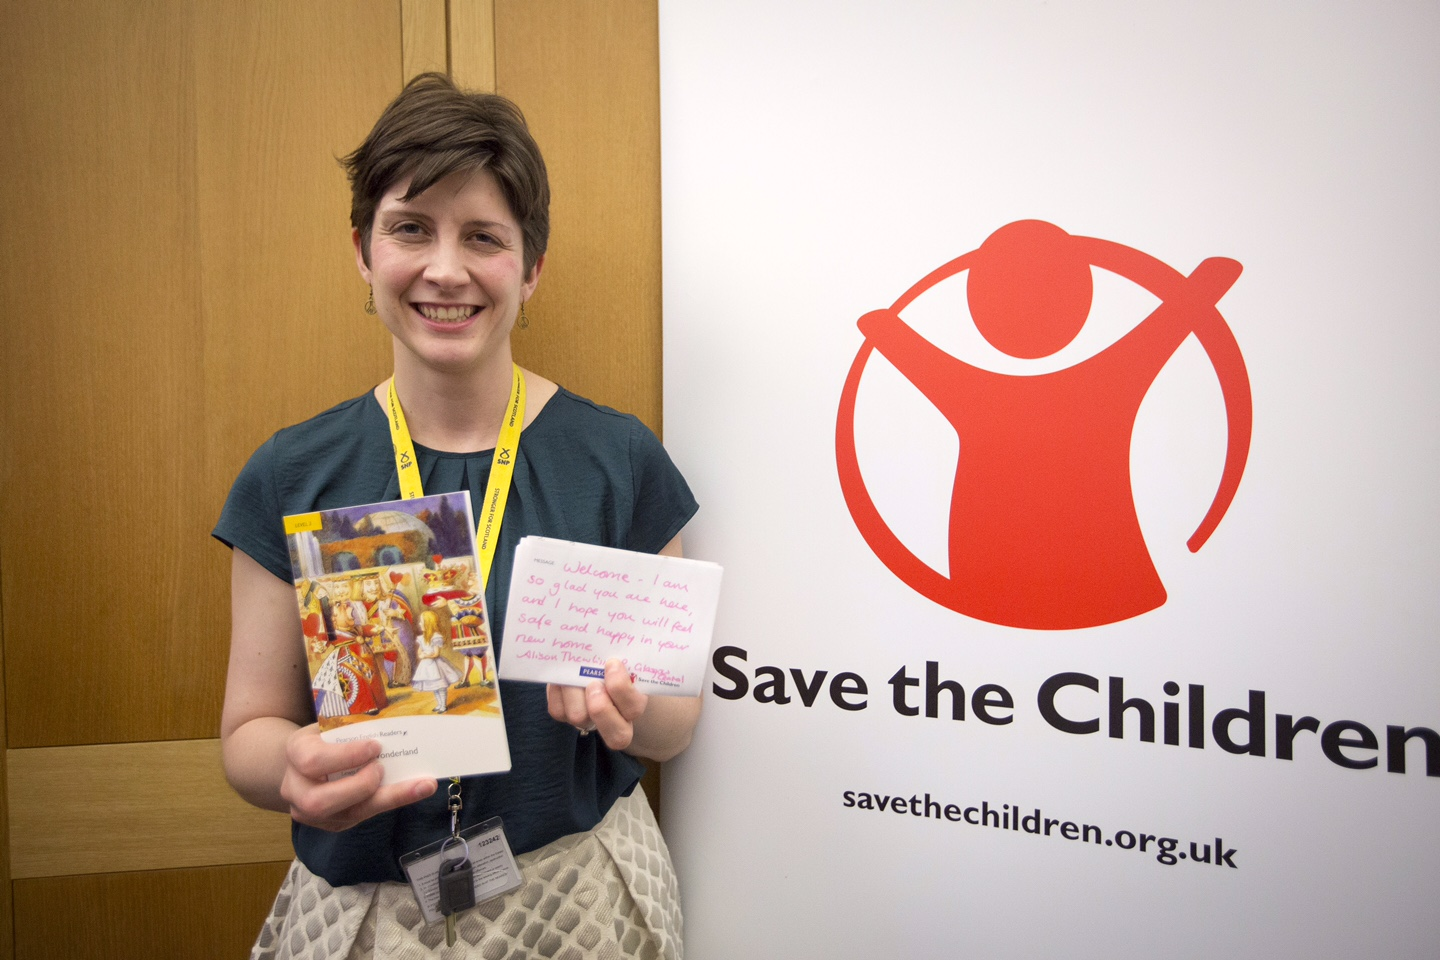 Alison Thewliss MP provides a welcome message for unaccompanied child refugees